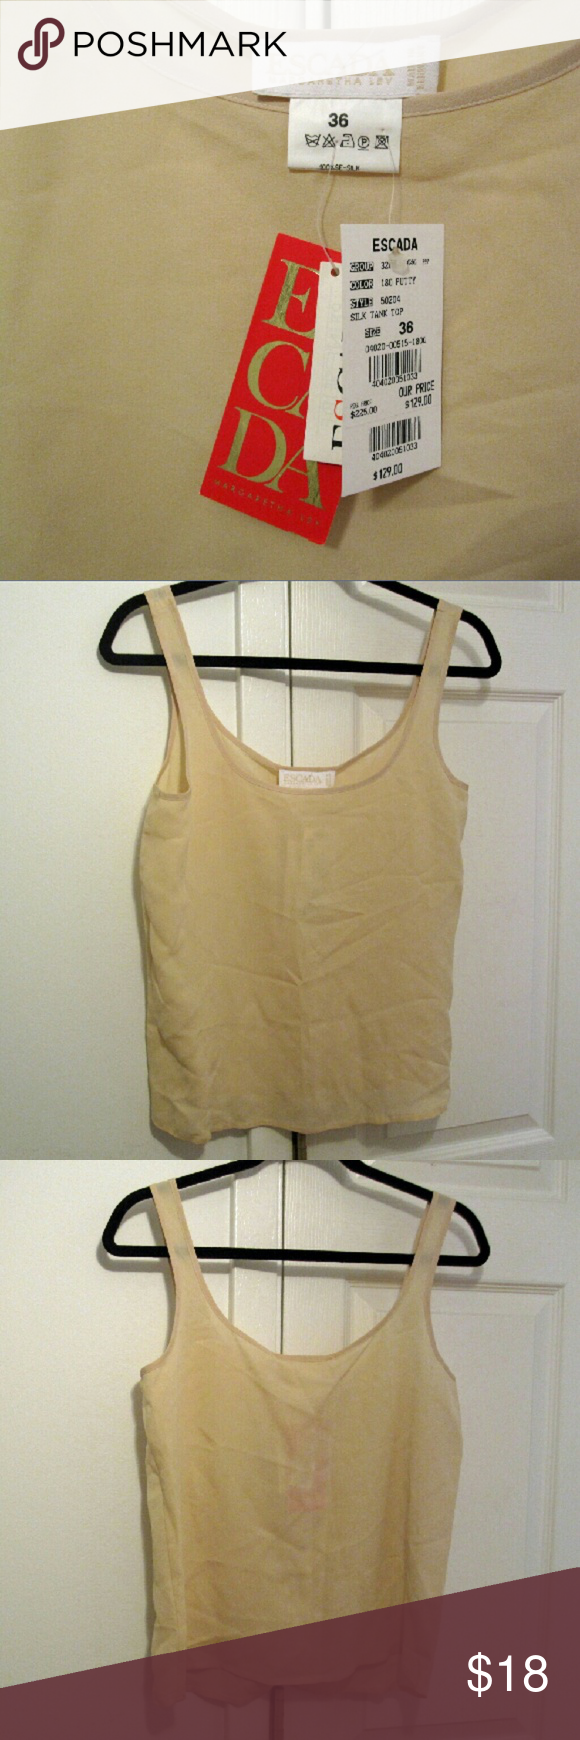 Escada Top New condition. Pet free smoke free home. Items under $10 price firm unless bundled. Purchase or bundle totaling $25+ and receive free gift of choice any closet item priced at $5. Escada Tops Tank Tops